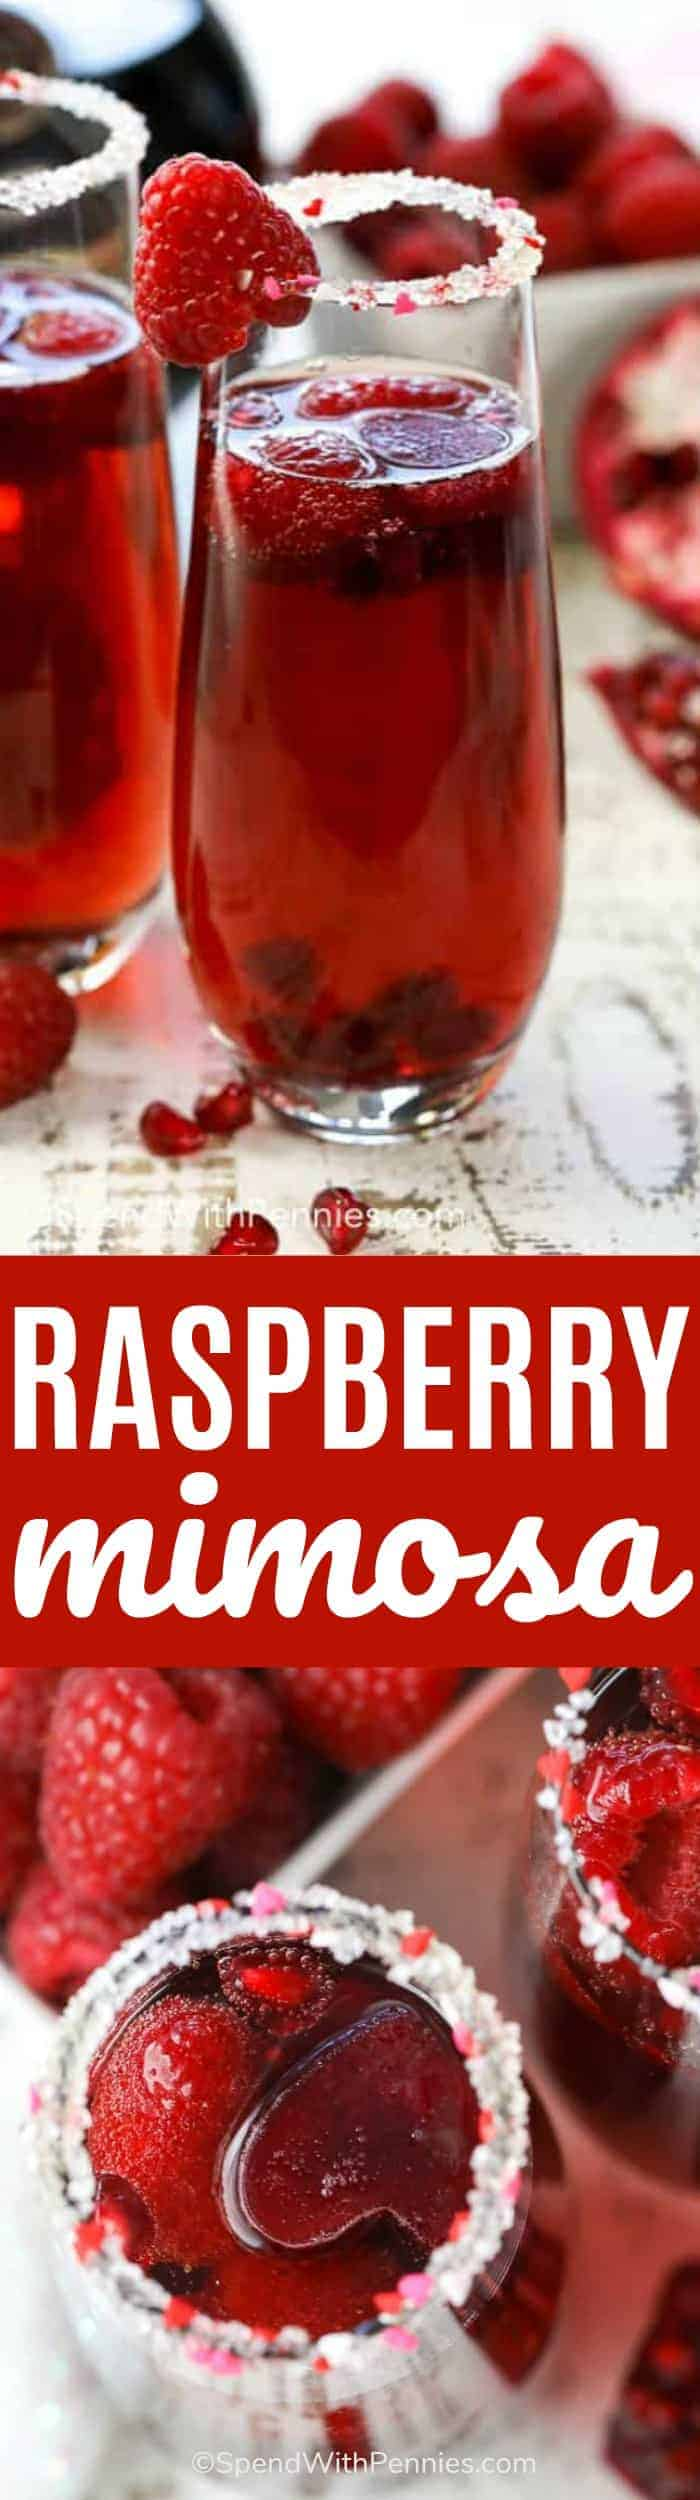 Raspberry Mimosa is made with raspberry liqueur and frosty pomegranate juice ice cubes topped with bubbly champagne or sparkling wine. This is perfect to enjoy with your hunny or to create a fun alcohol-free mocktail for the kids! #spendwithpennies #cocktail #mocktail #raspberry #easyrecipe #raspberryliquor #drinkrecipe